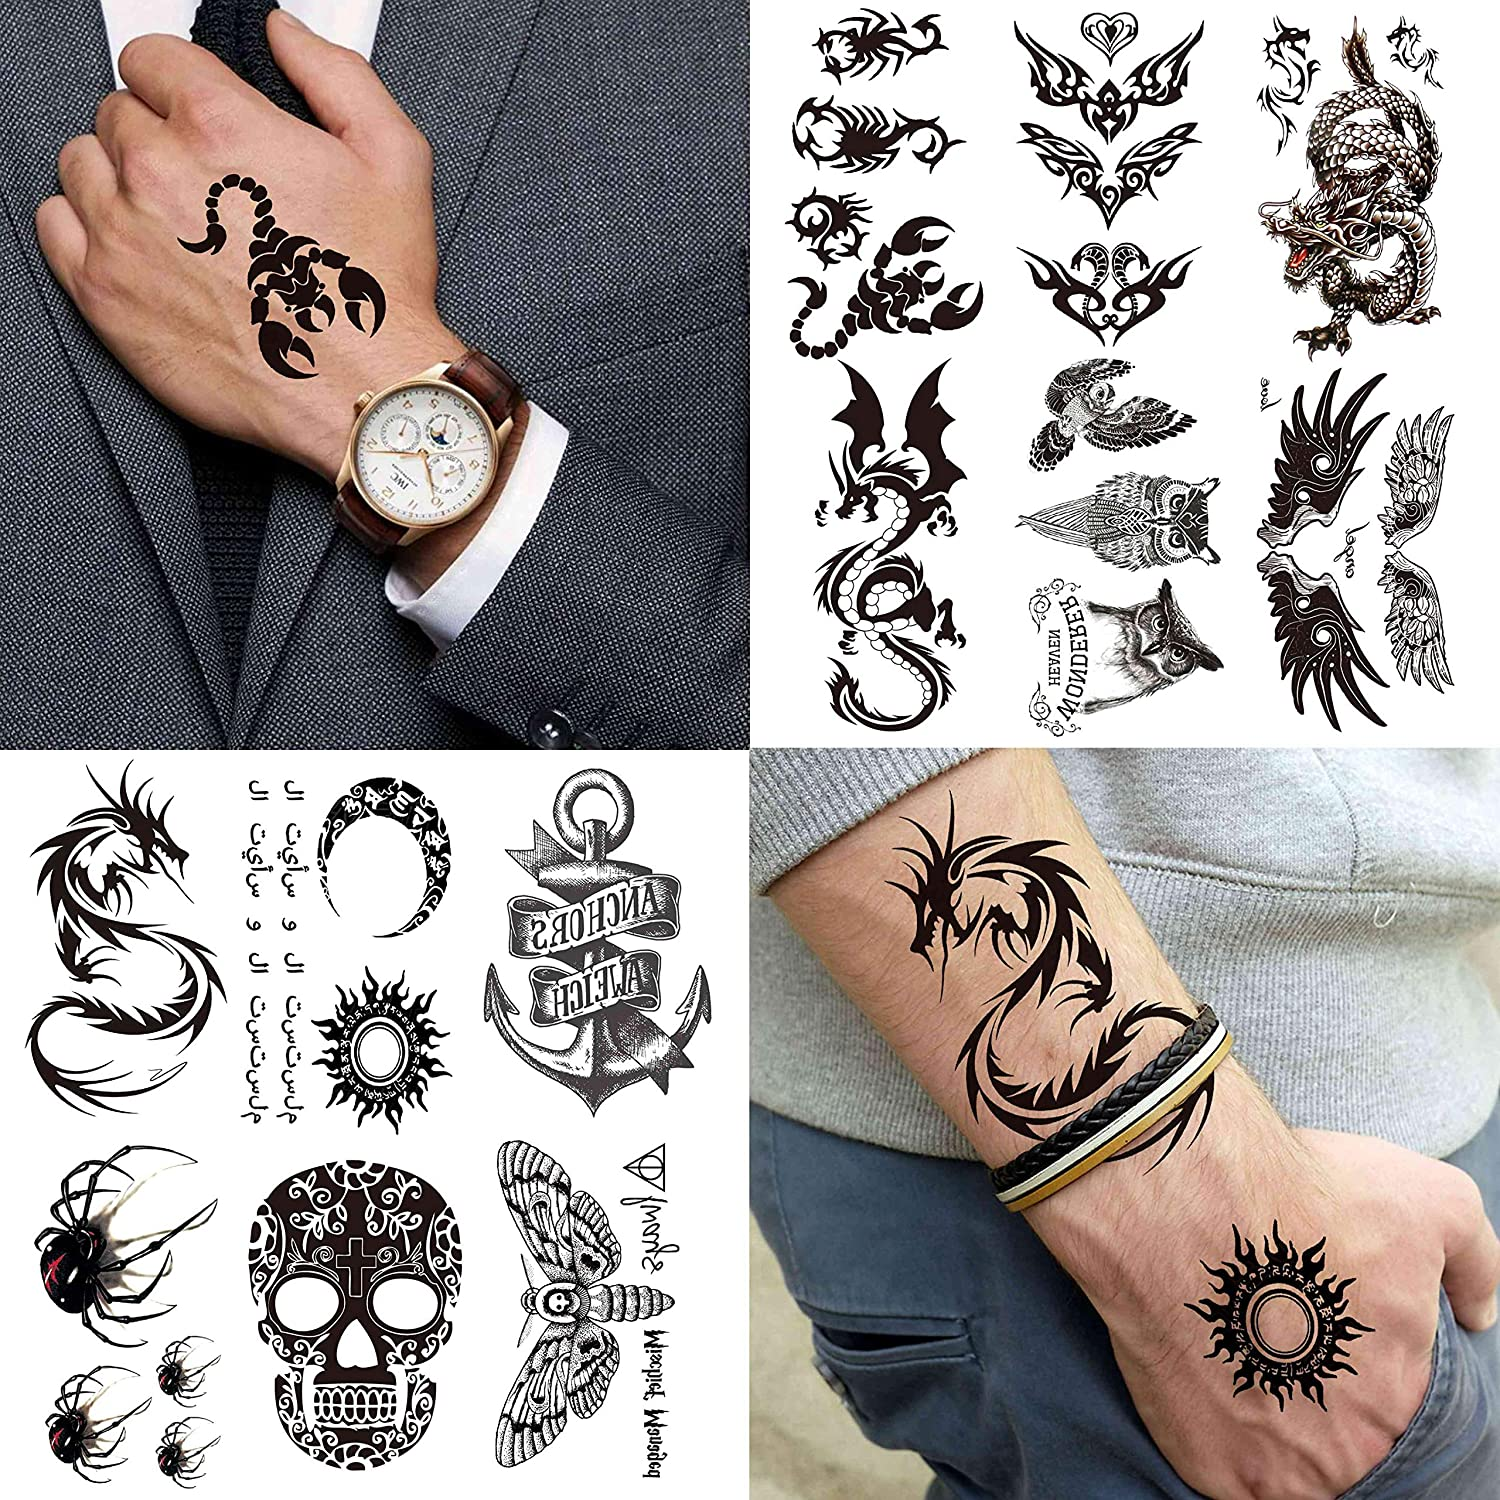 VANTATY 20 Sheets 20D Small Black Temporary Tattoos For Women Men Waterproof  Fake Tattoo Stickers For Face Neck Arm Children Tattoo Temporary Flower ...